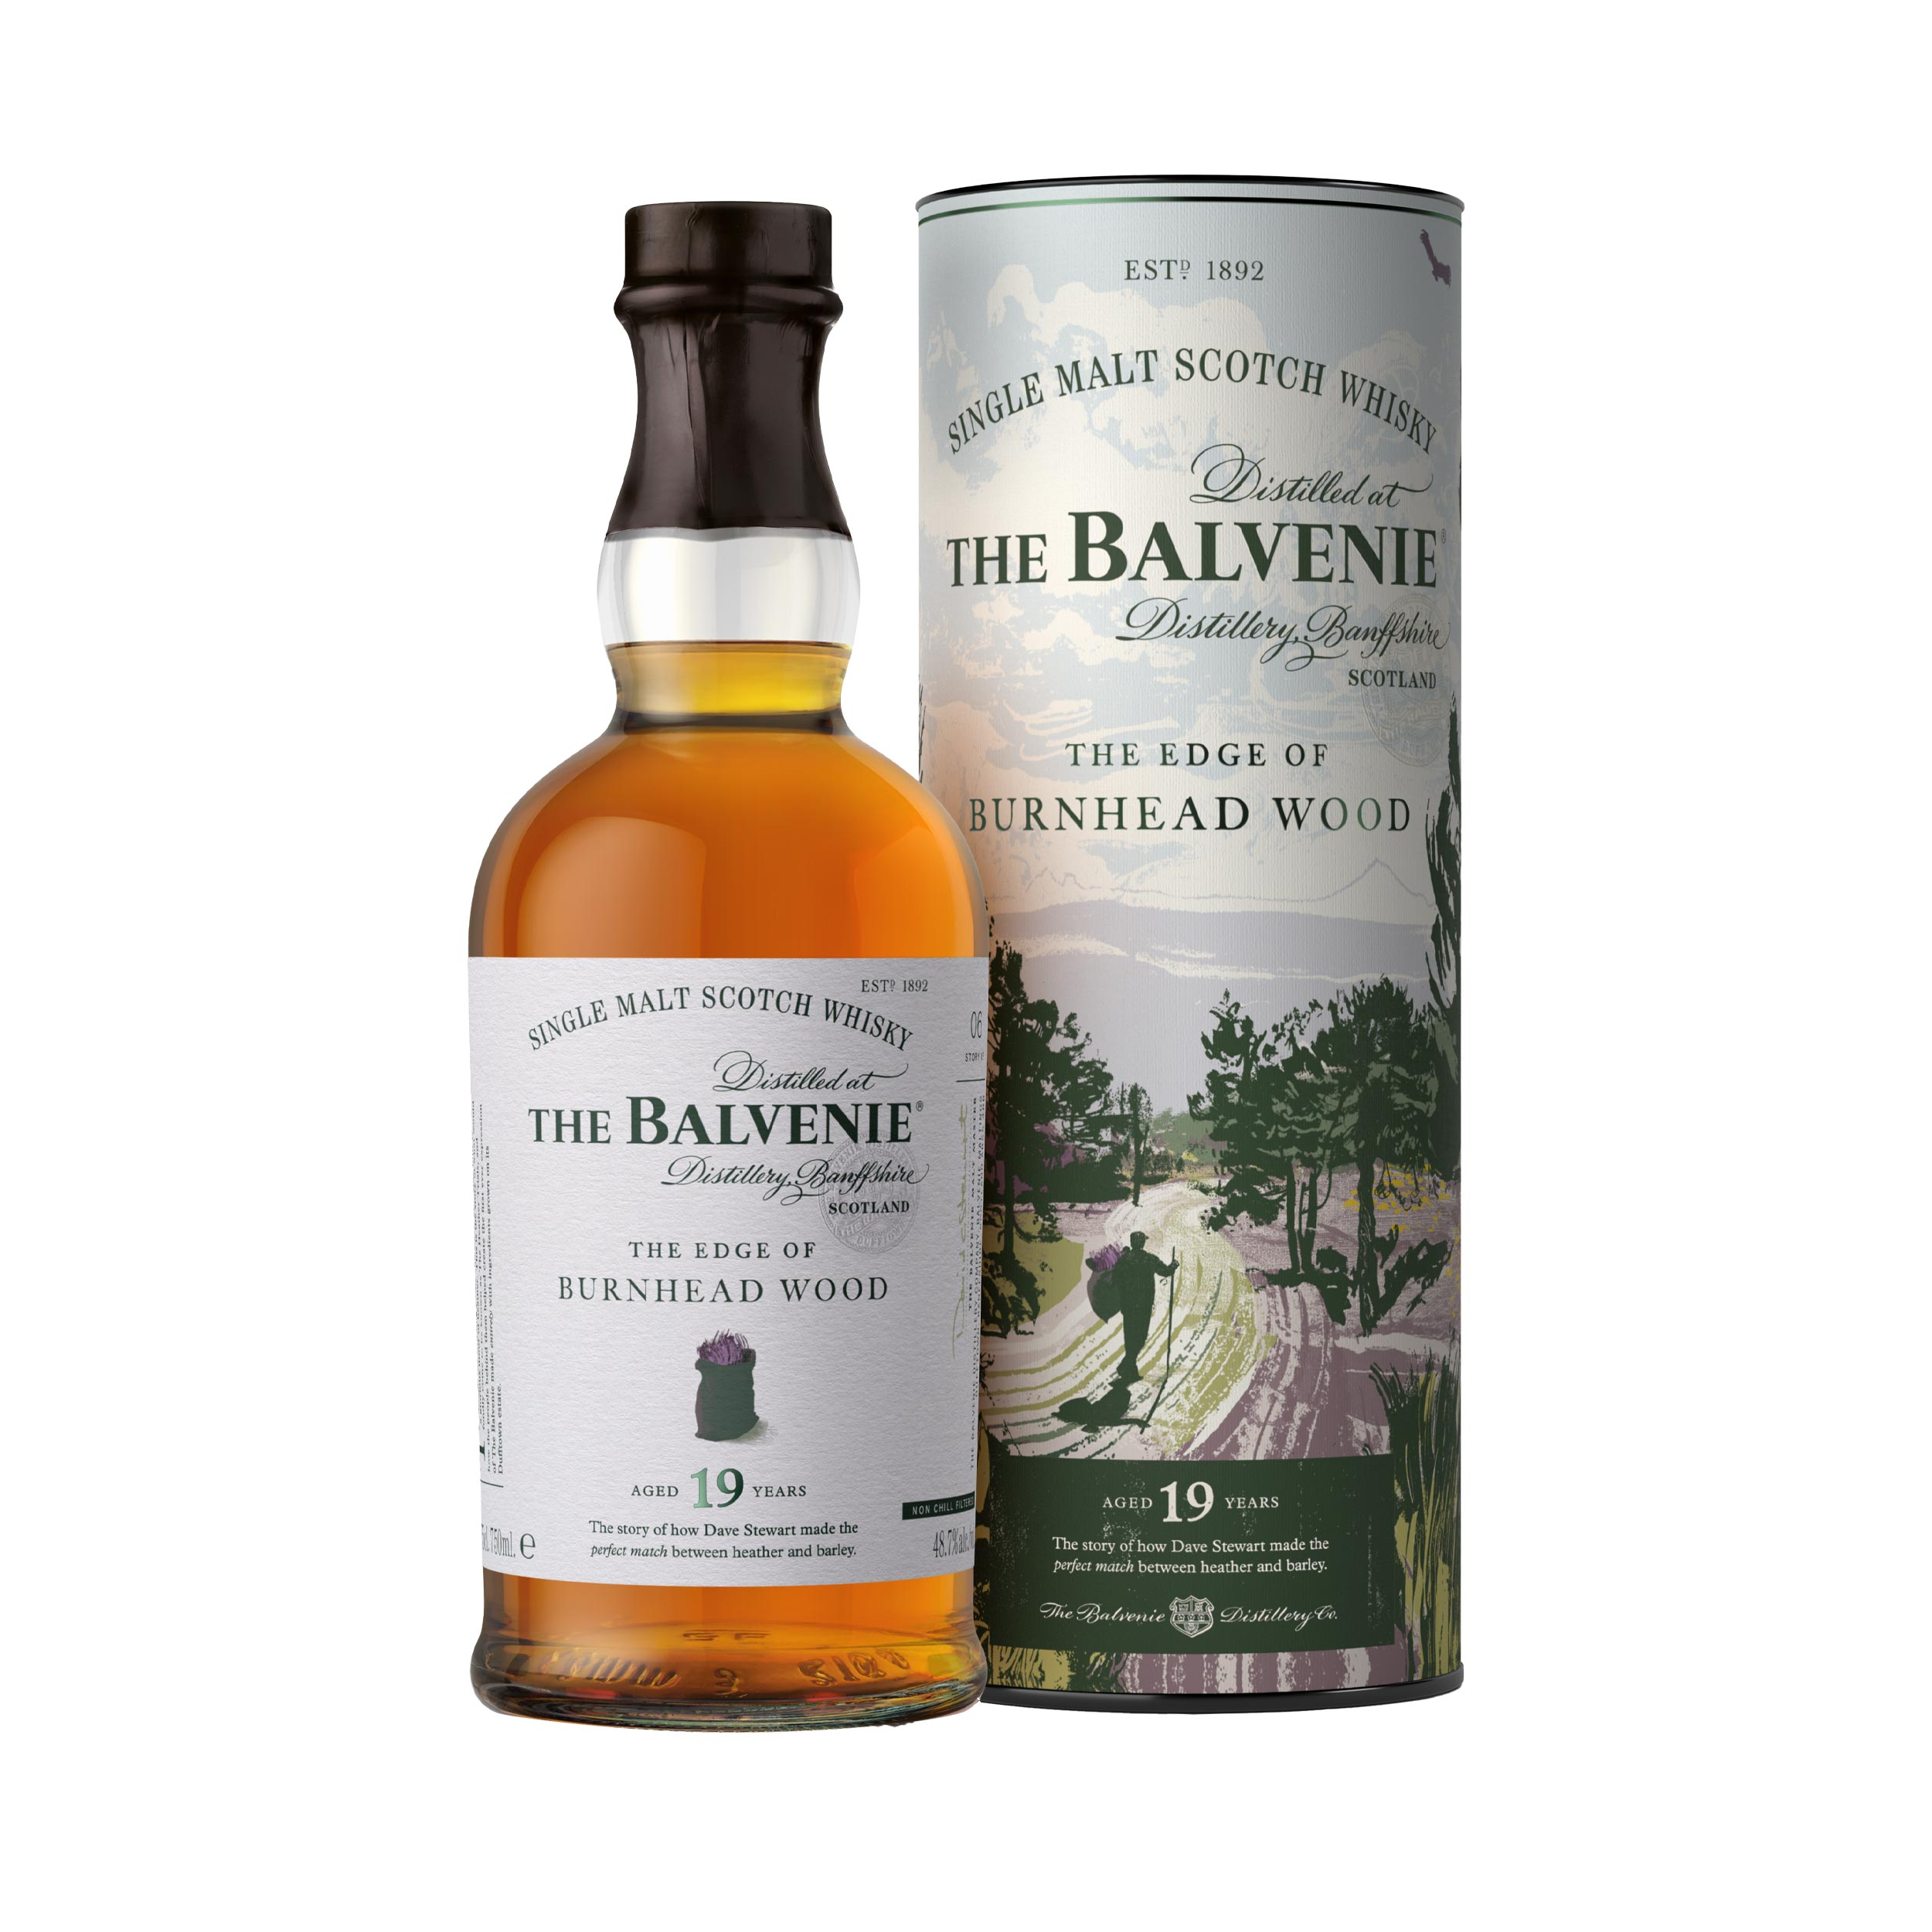 Balvenie The Edge of Burnhead Wood 19 Year Old Speyside Single Malt Scotch Whisky 70cl